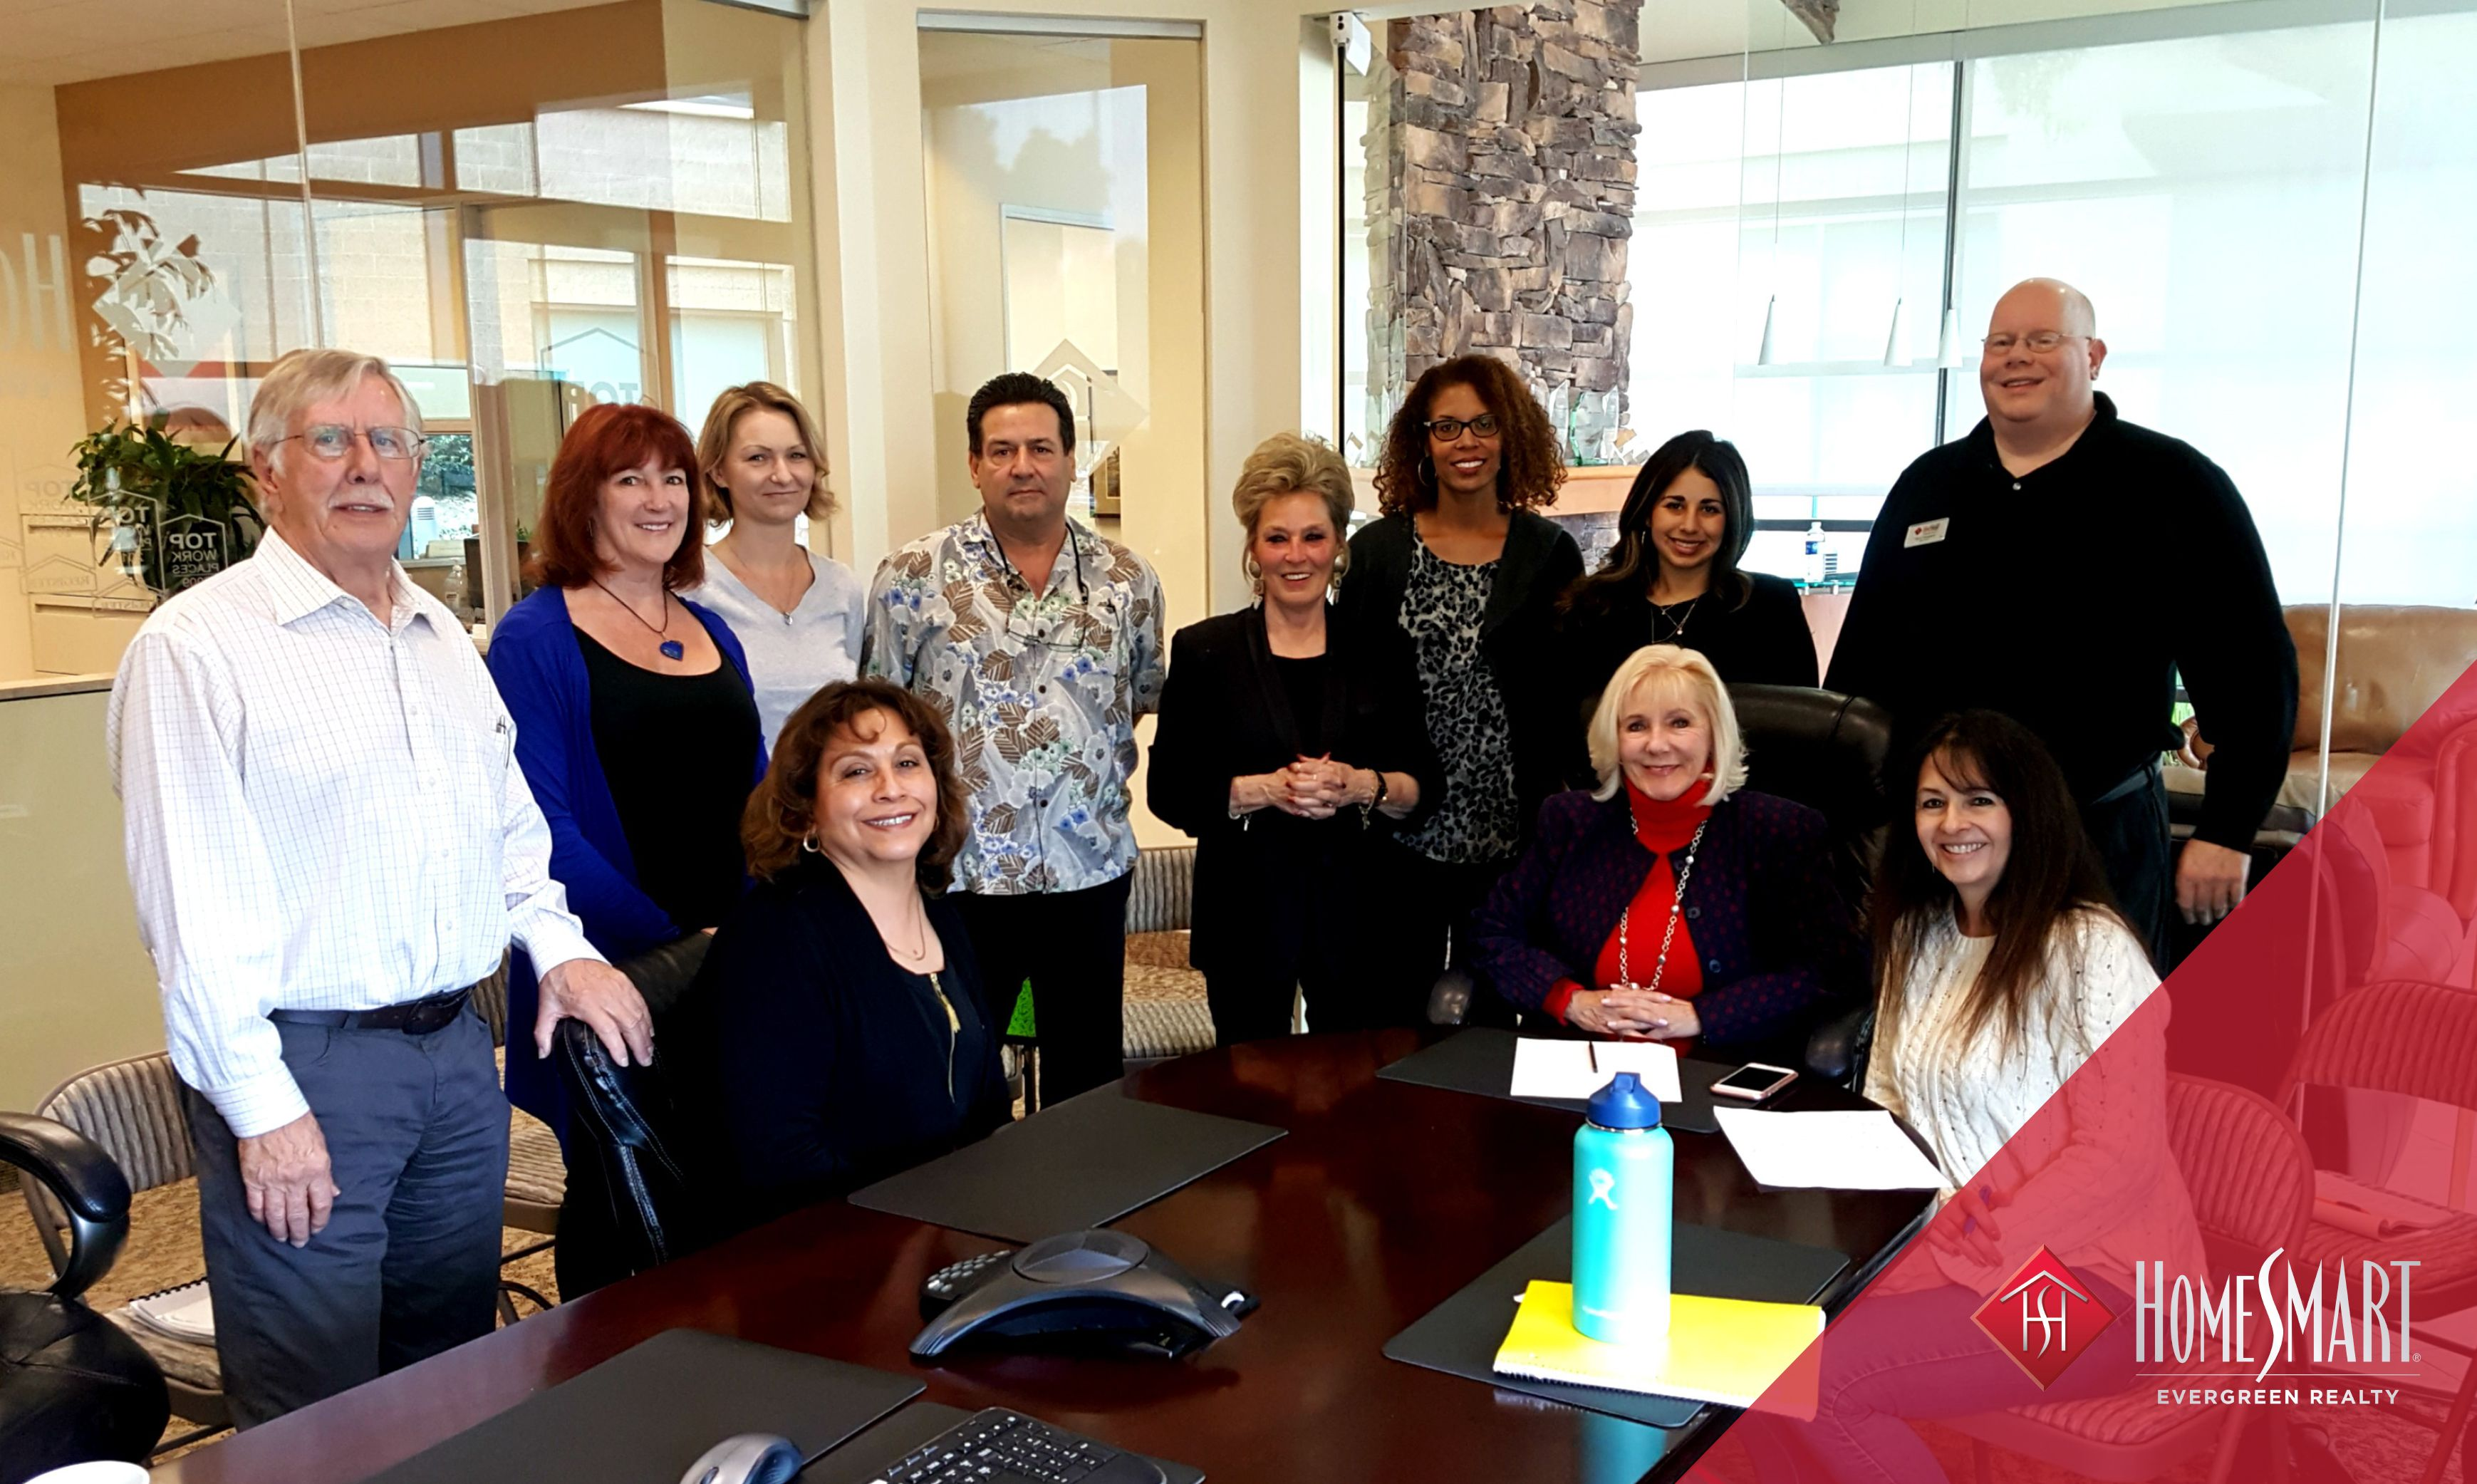 thank you carol haacker for teaching our agents how to generate more leads with real estate farming techniques tips go to joinhomesmartegrcom to learn